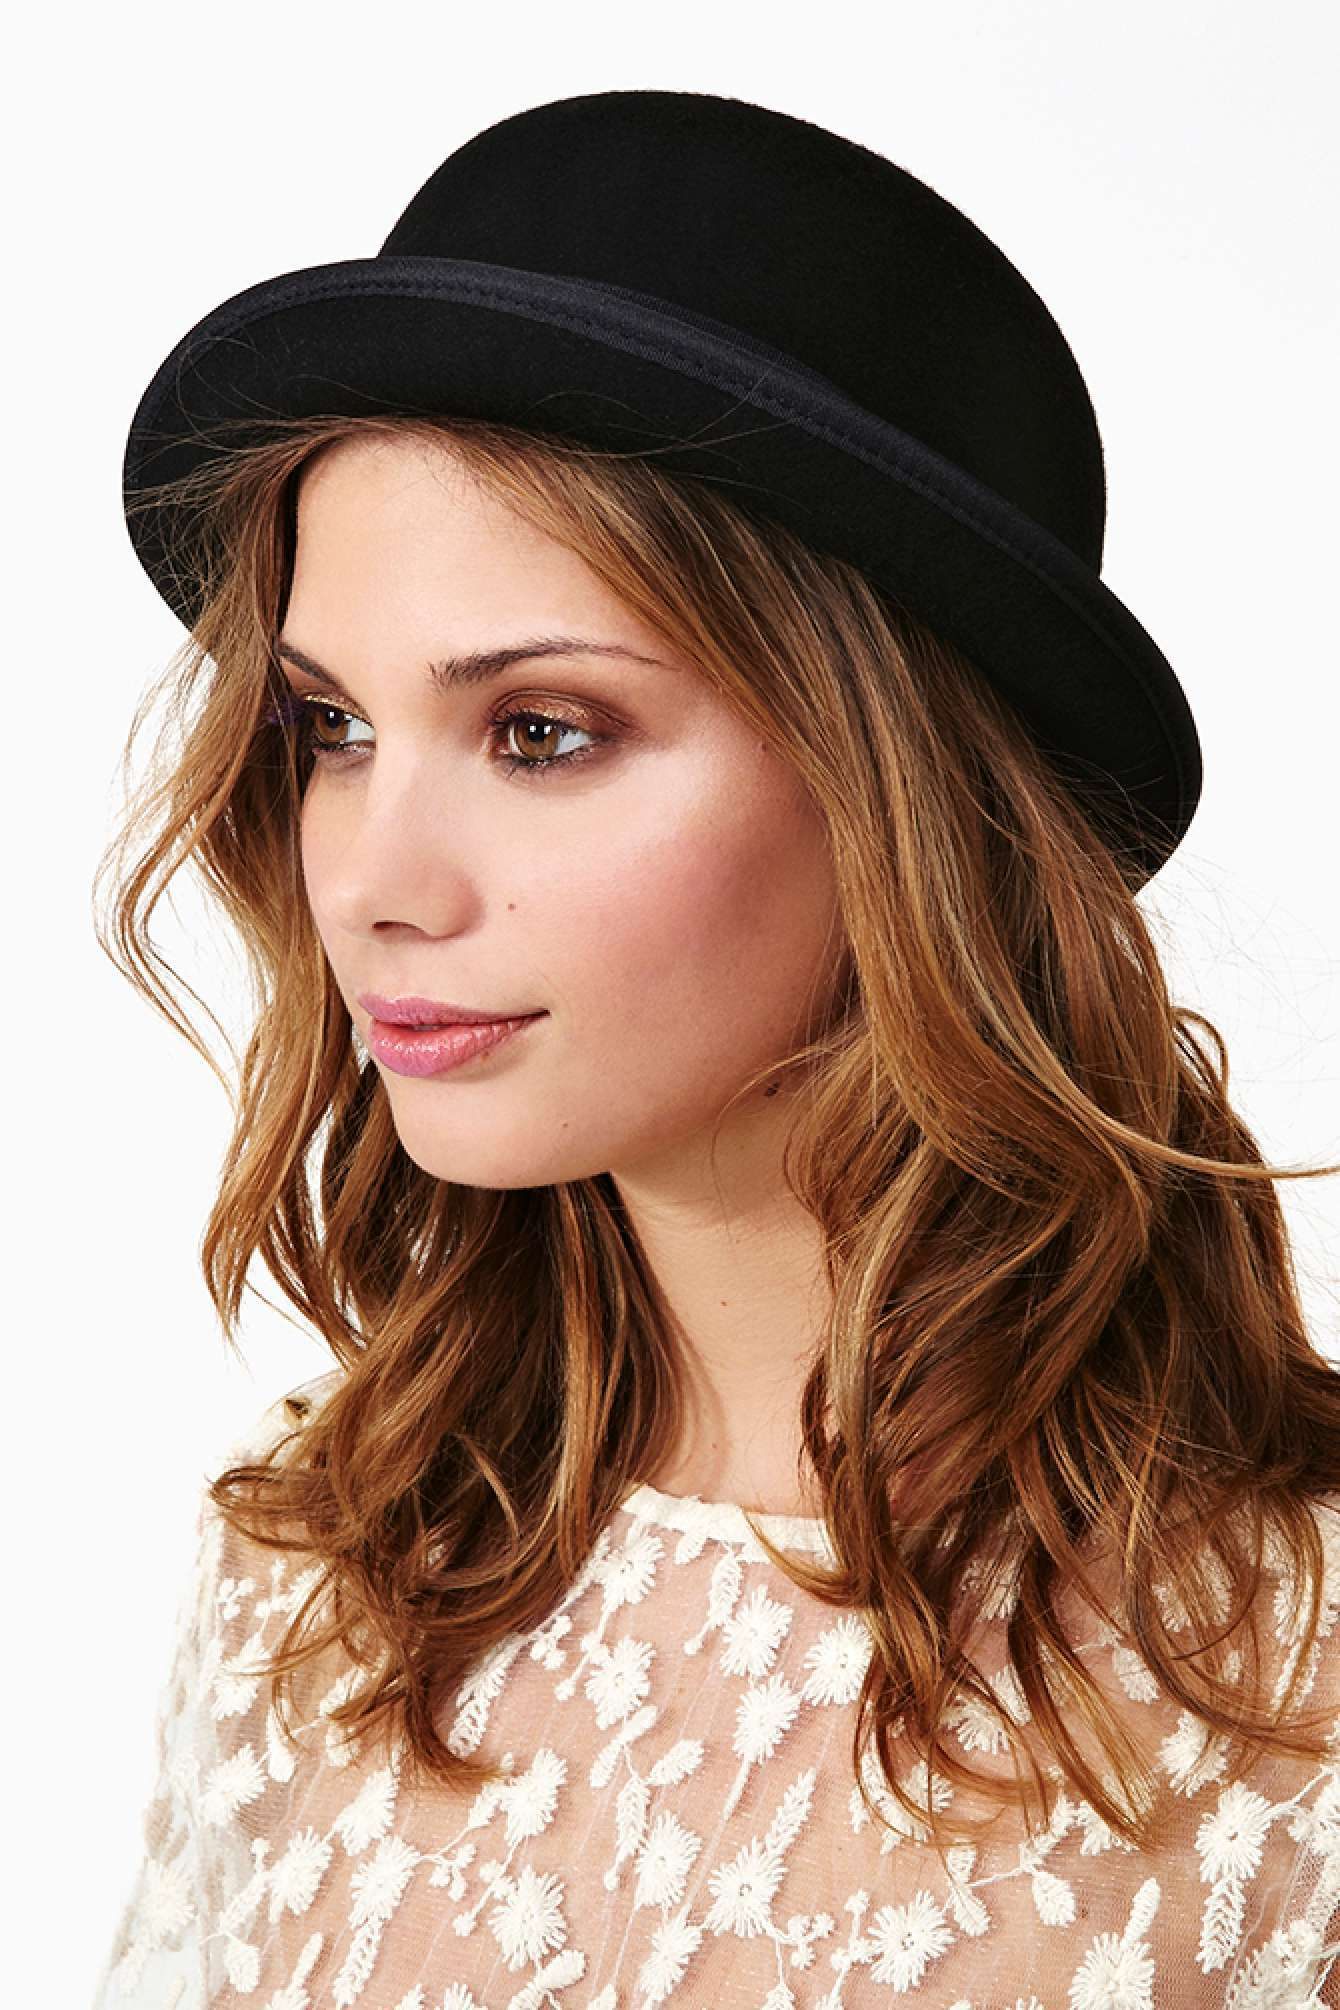 1940s Hats History - 20 Popular Women's Hat Styles Ladies fashion bowler hat